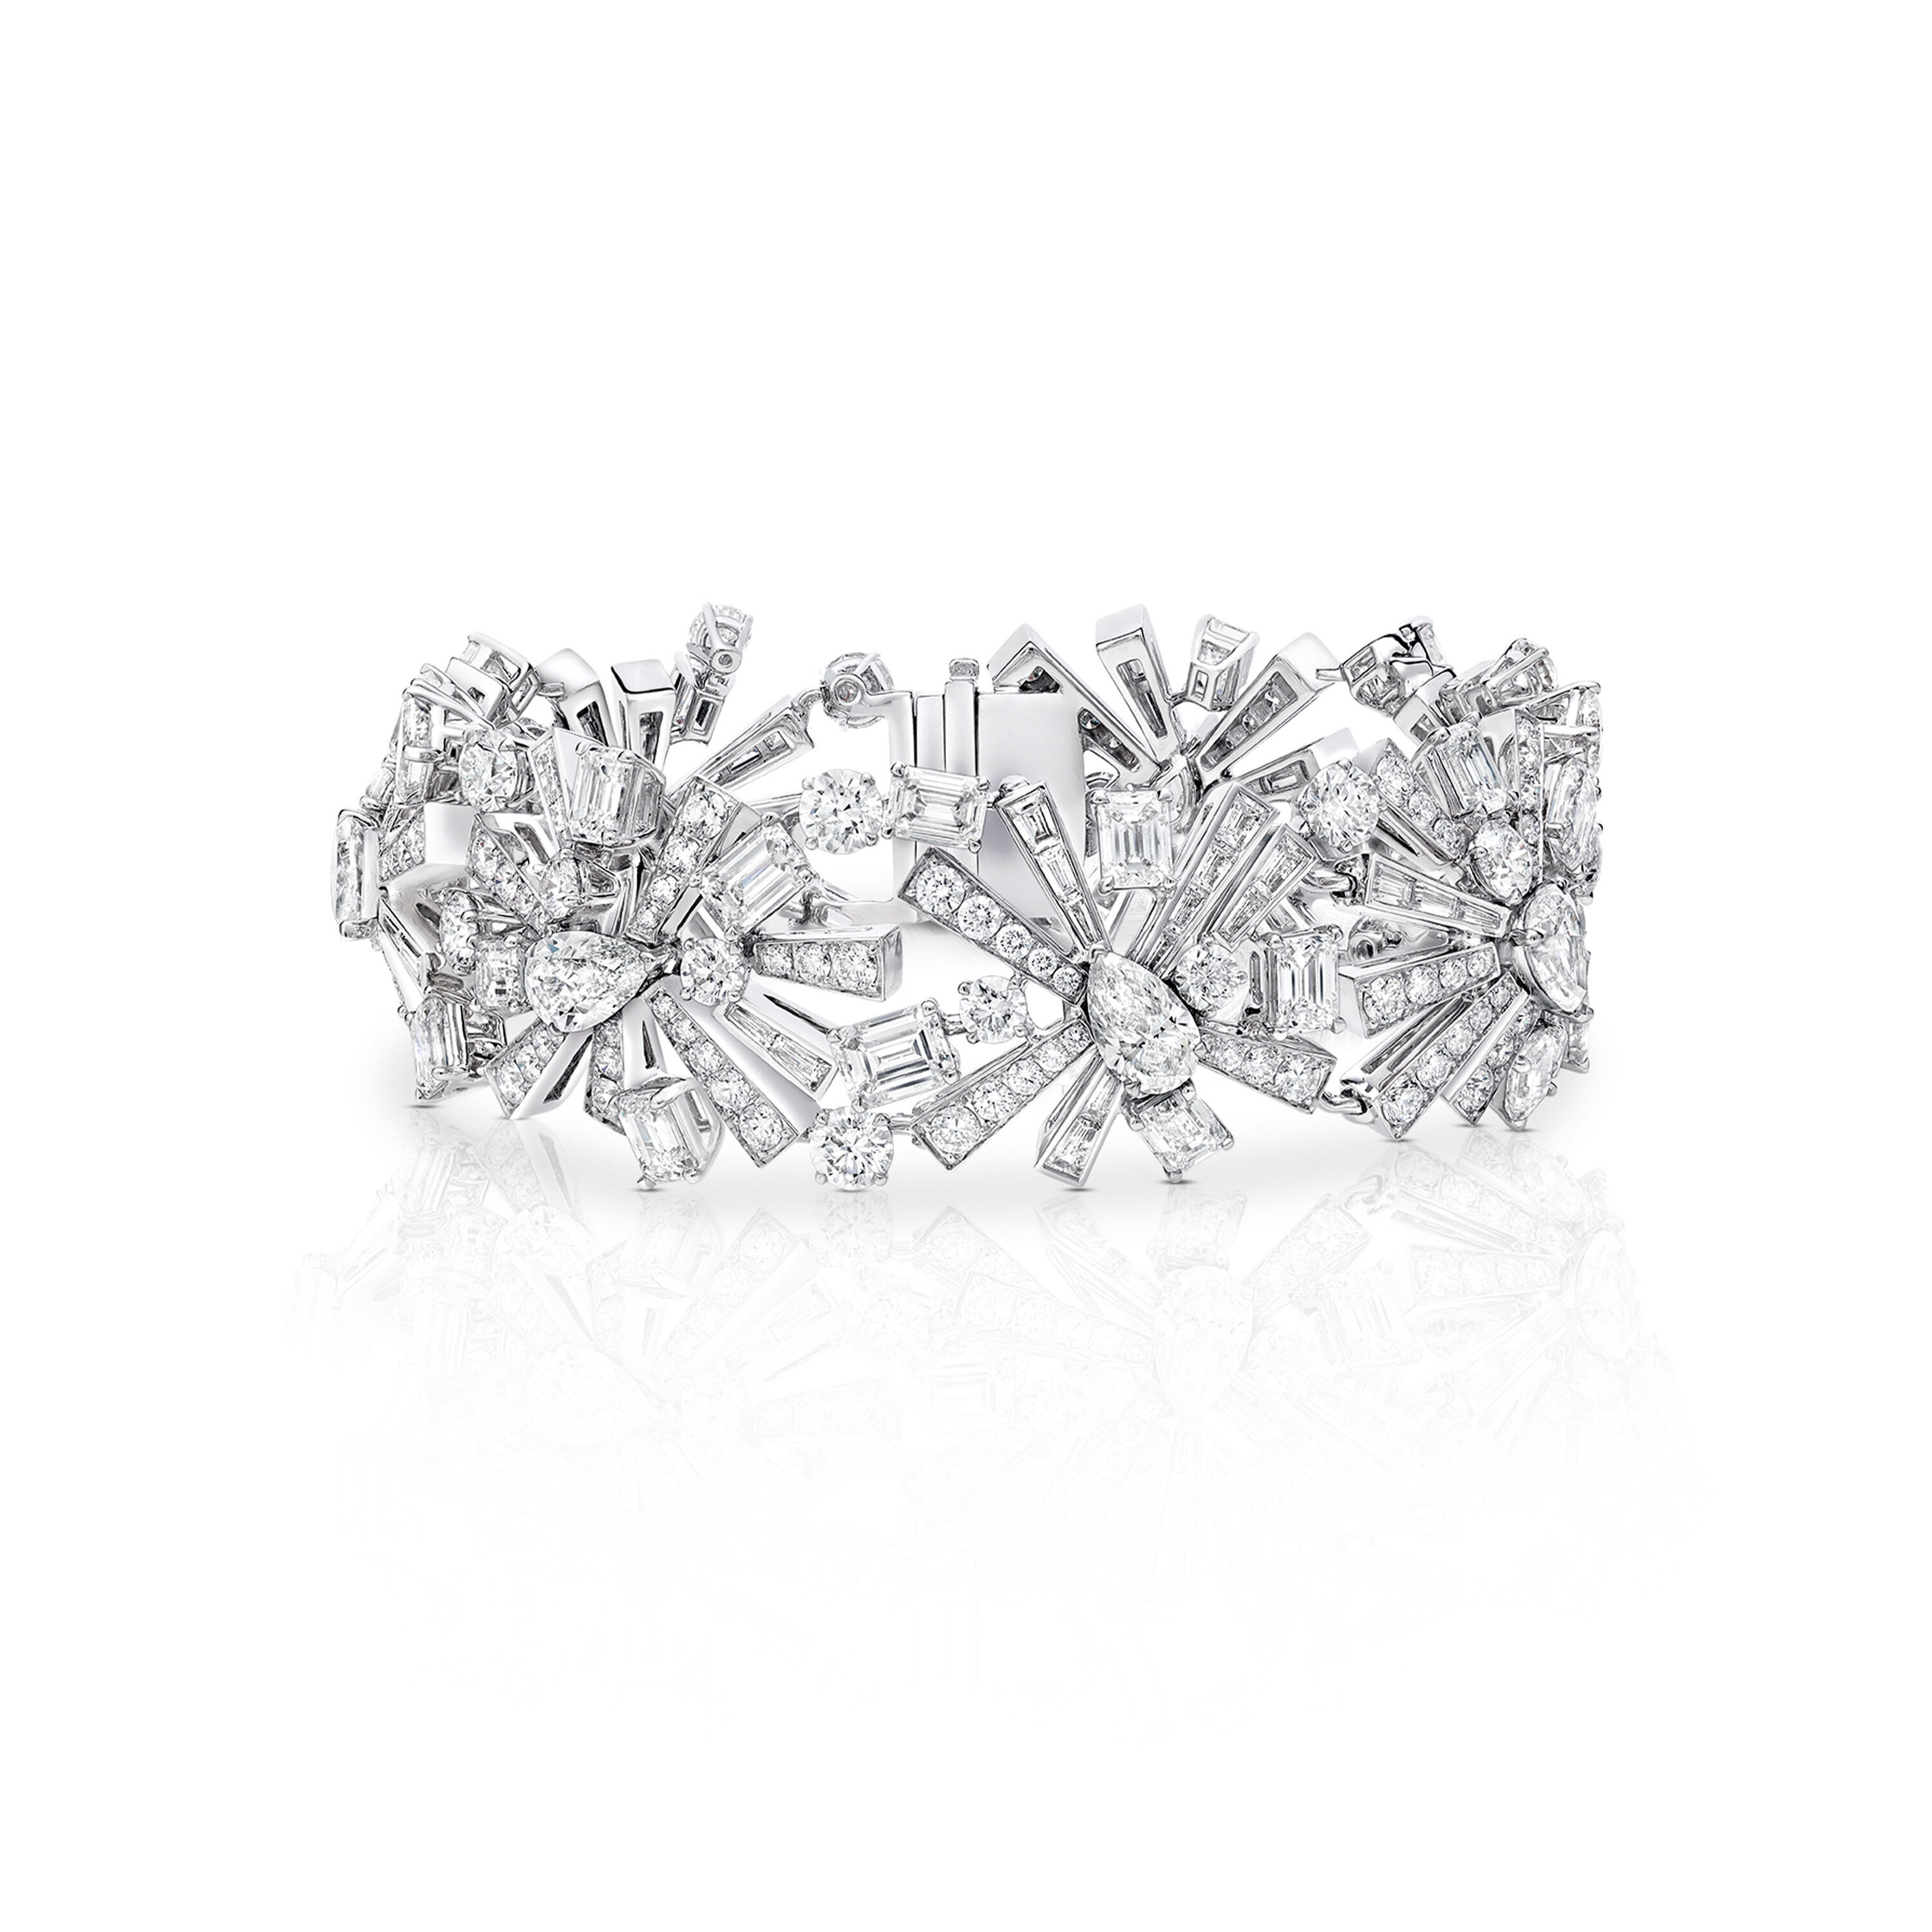 A New Dawn Diamond High Jewellery Bracelet from the Graff Tribal collection